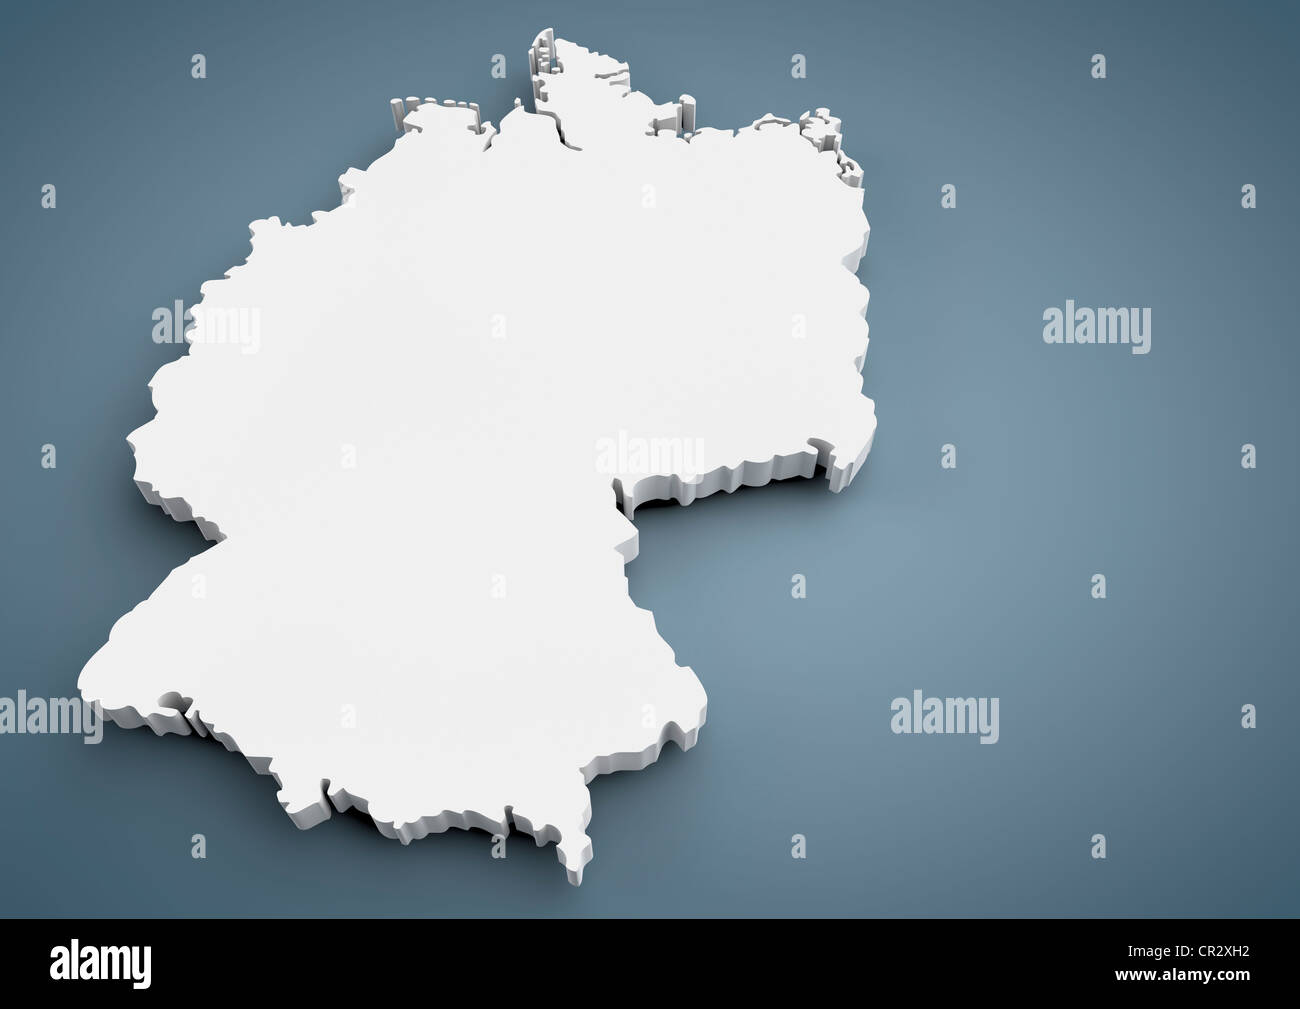 Map Of Germany 3d.Outline Of Germany Map 3d Illustration Stock Photo 48622590 Alamy